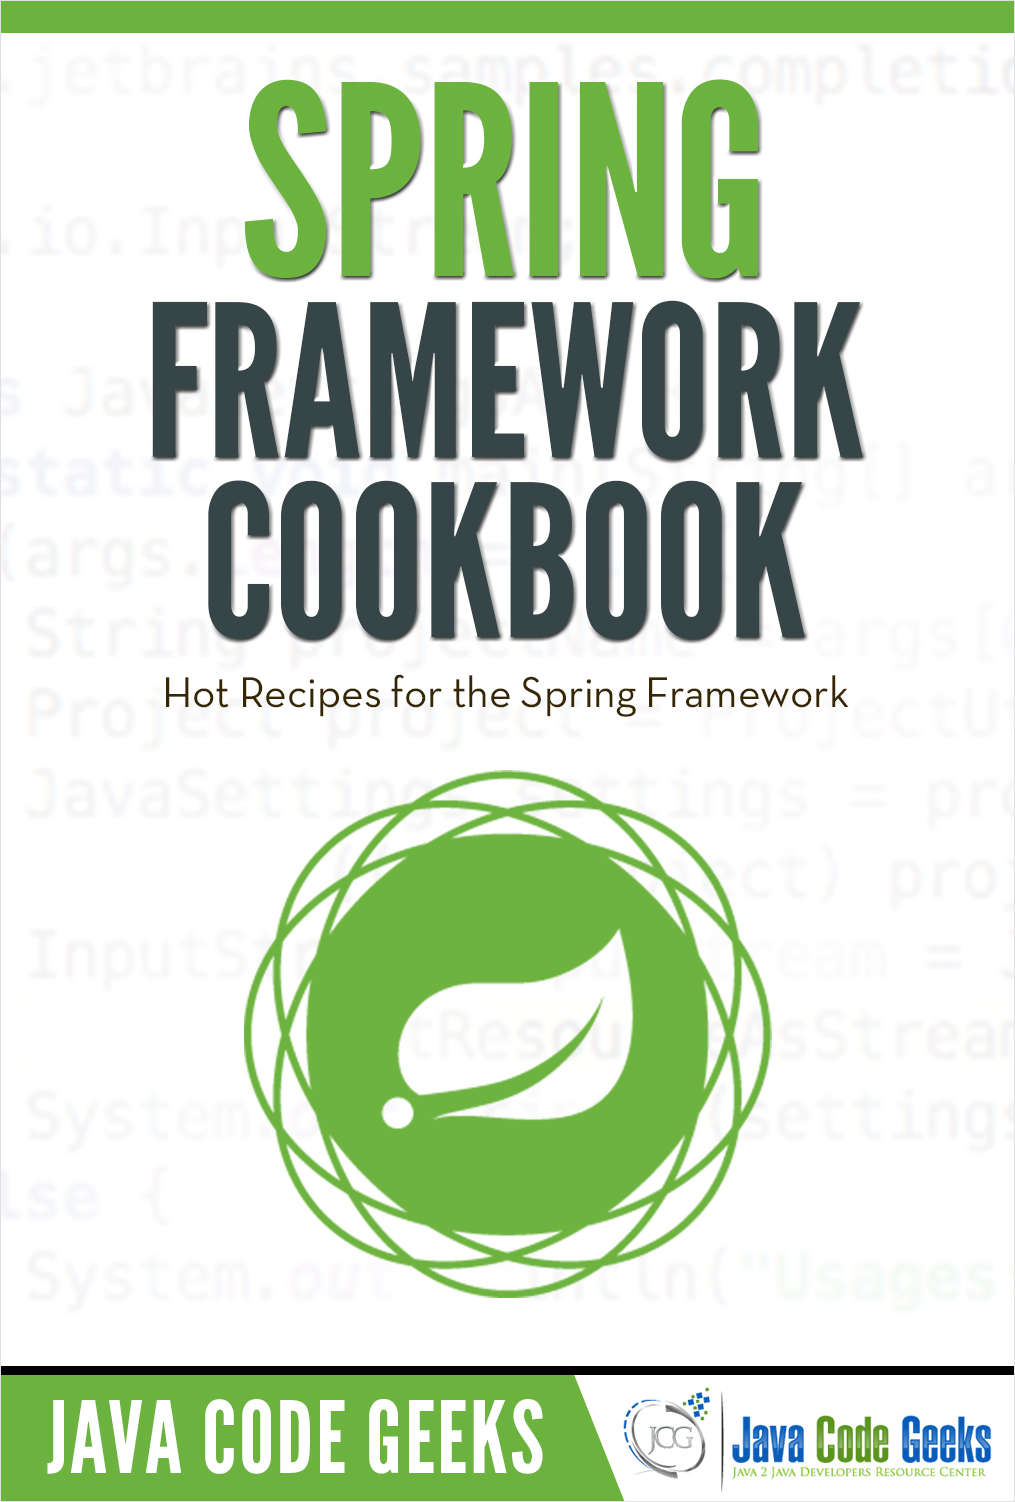 Spring Framework Cookbook